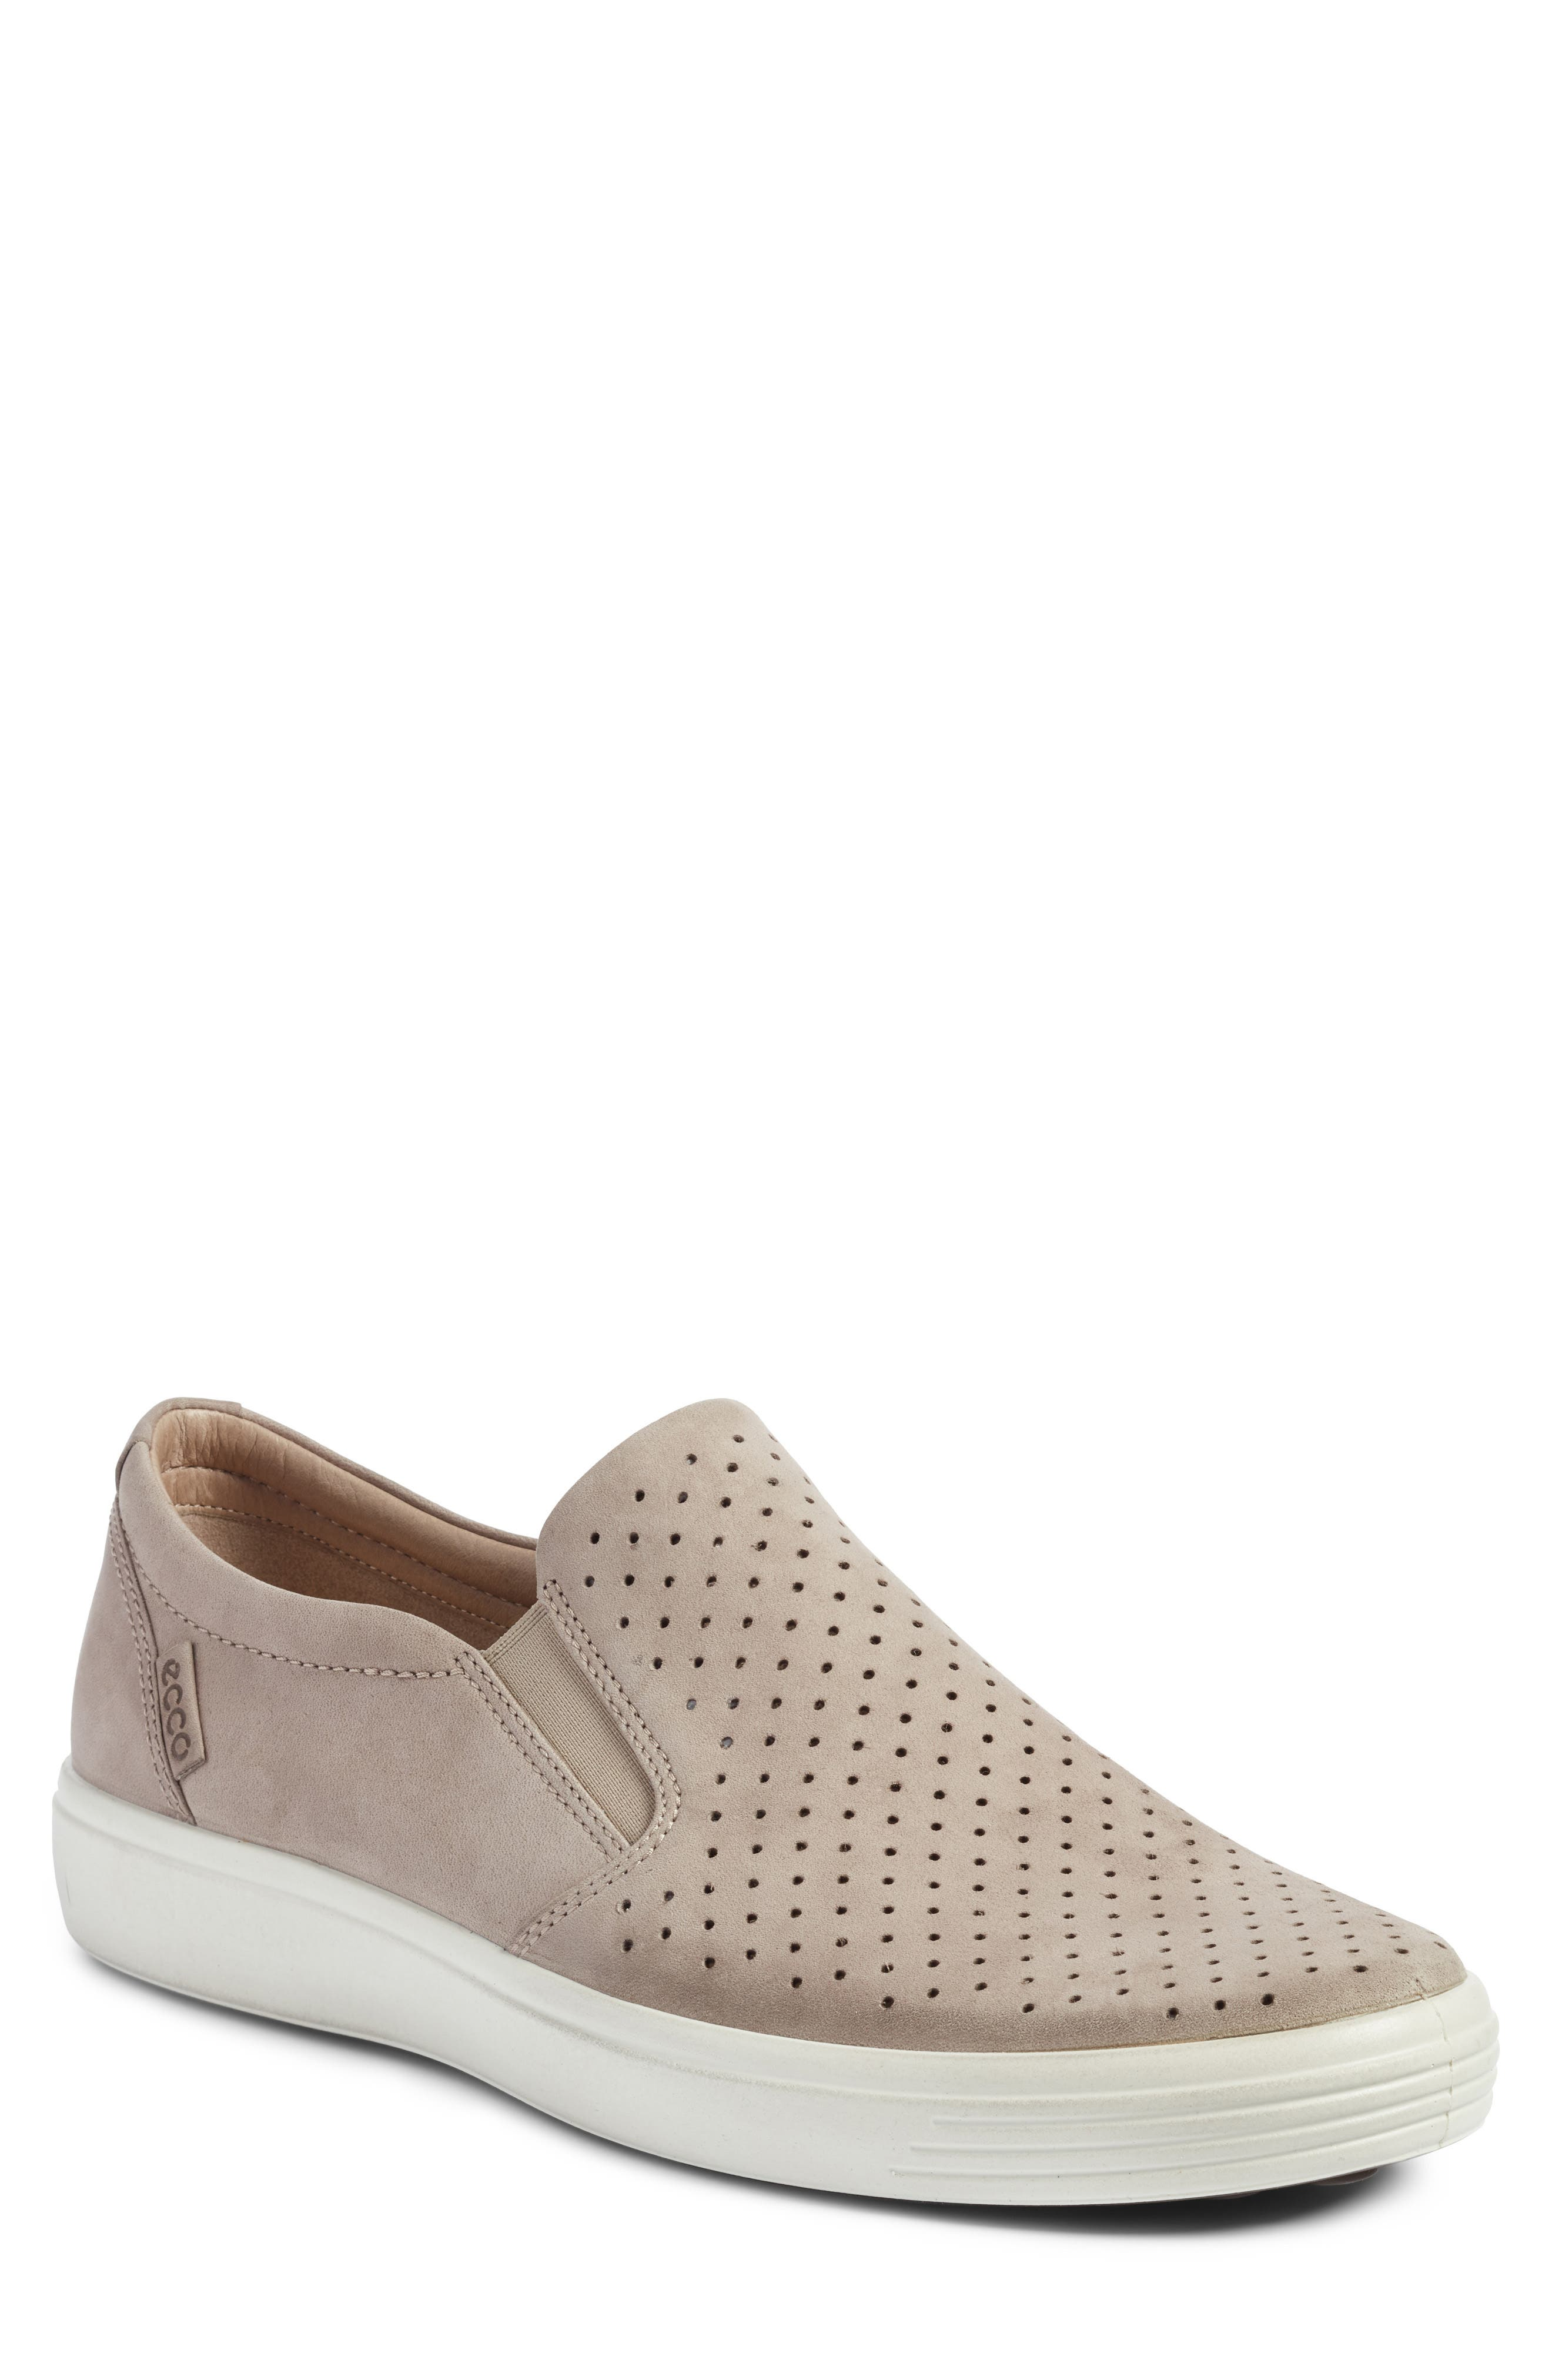 Soft 7 Retro Slip-On Sneaker,                         Main,                         color, Moonrock Leather